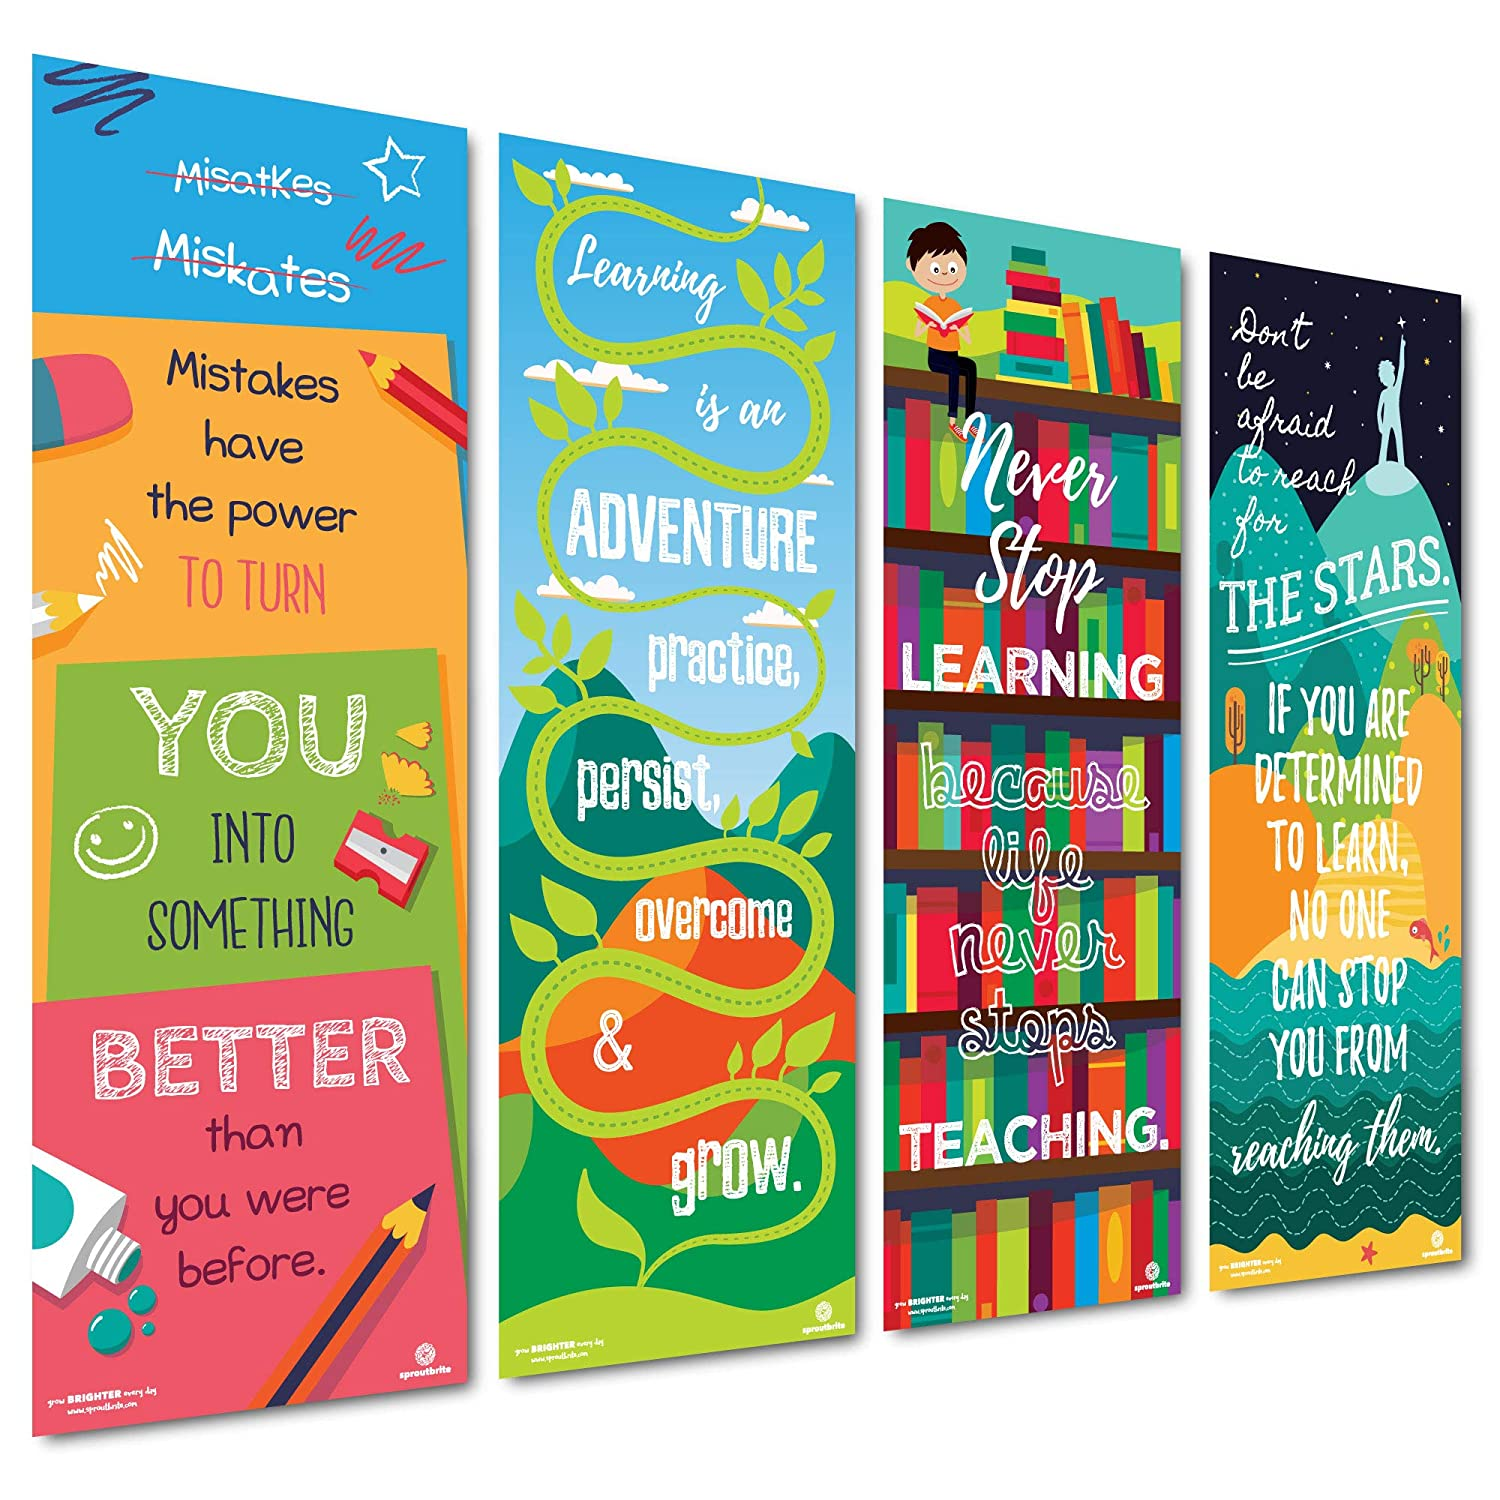 Motivational /& Inspirational Growth Mindset for Teacher Students Sproutbrite Classroom Decorations Vertical Banner//Posters 13x39 Each Educational Paper 4 Poster Pack